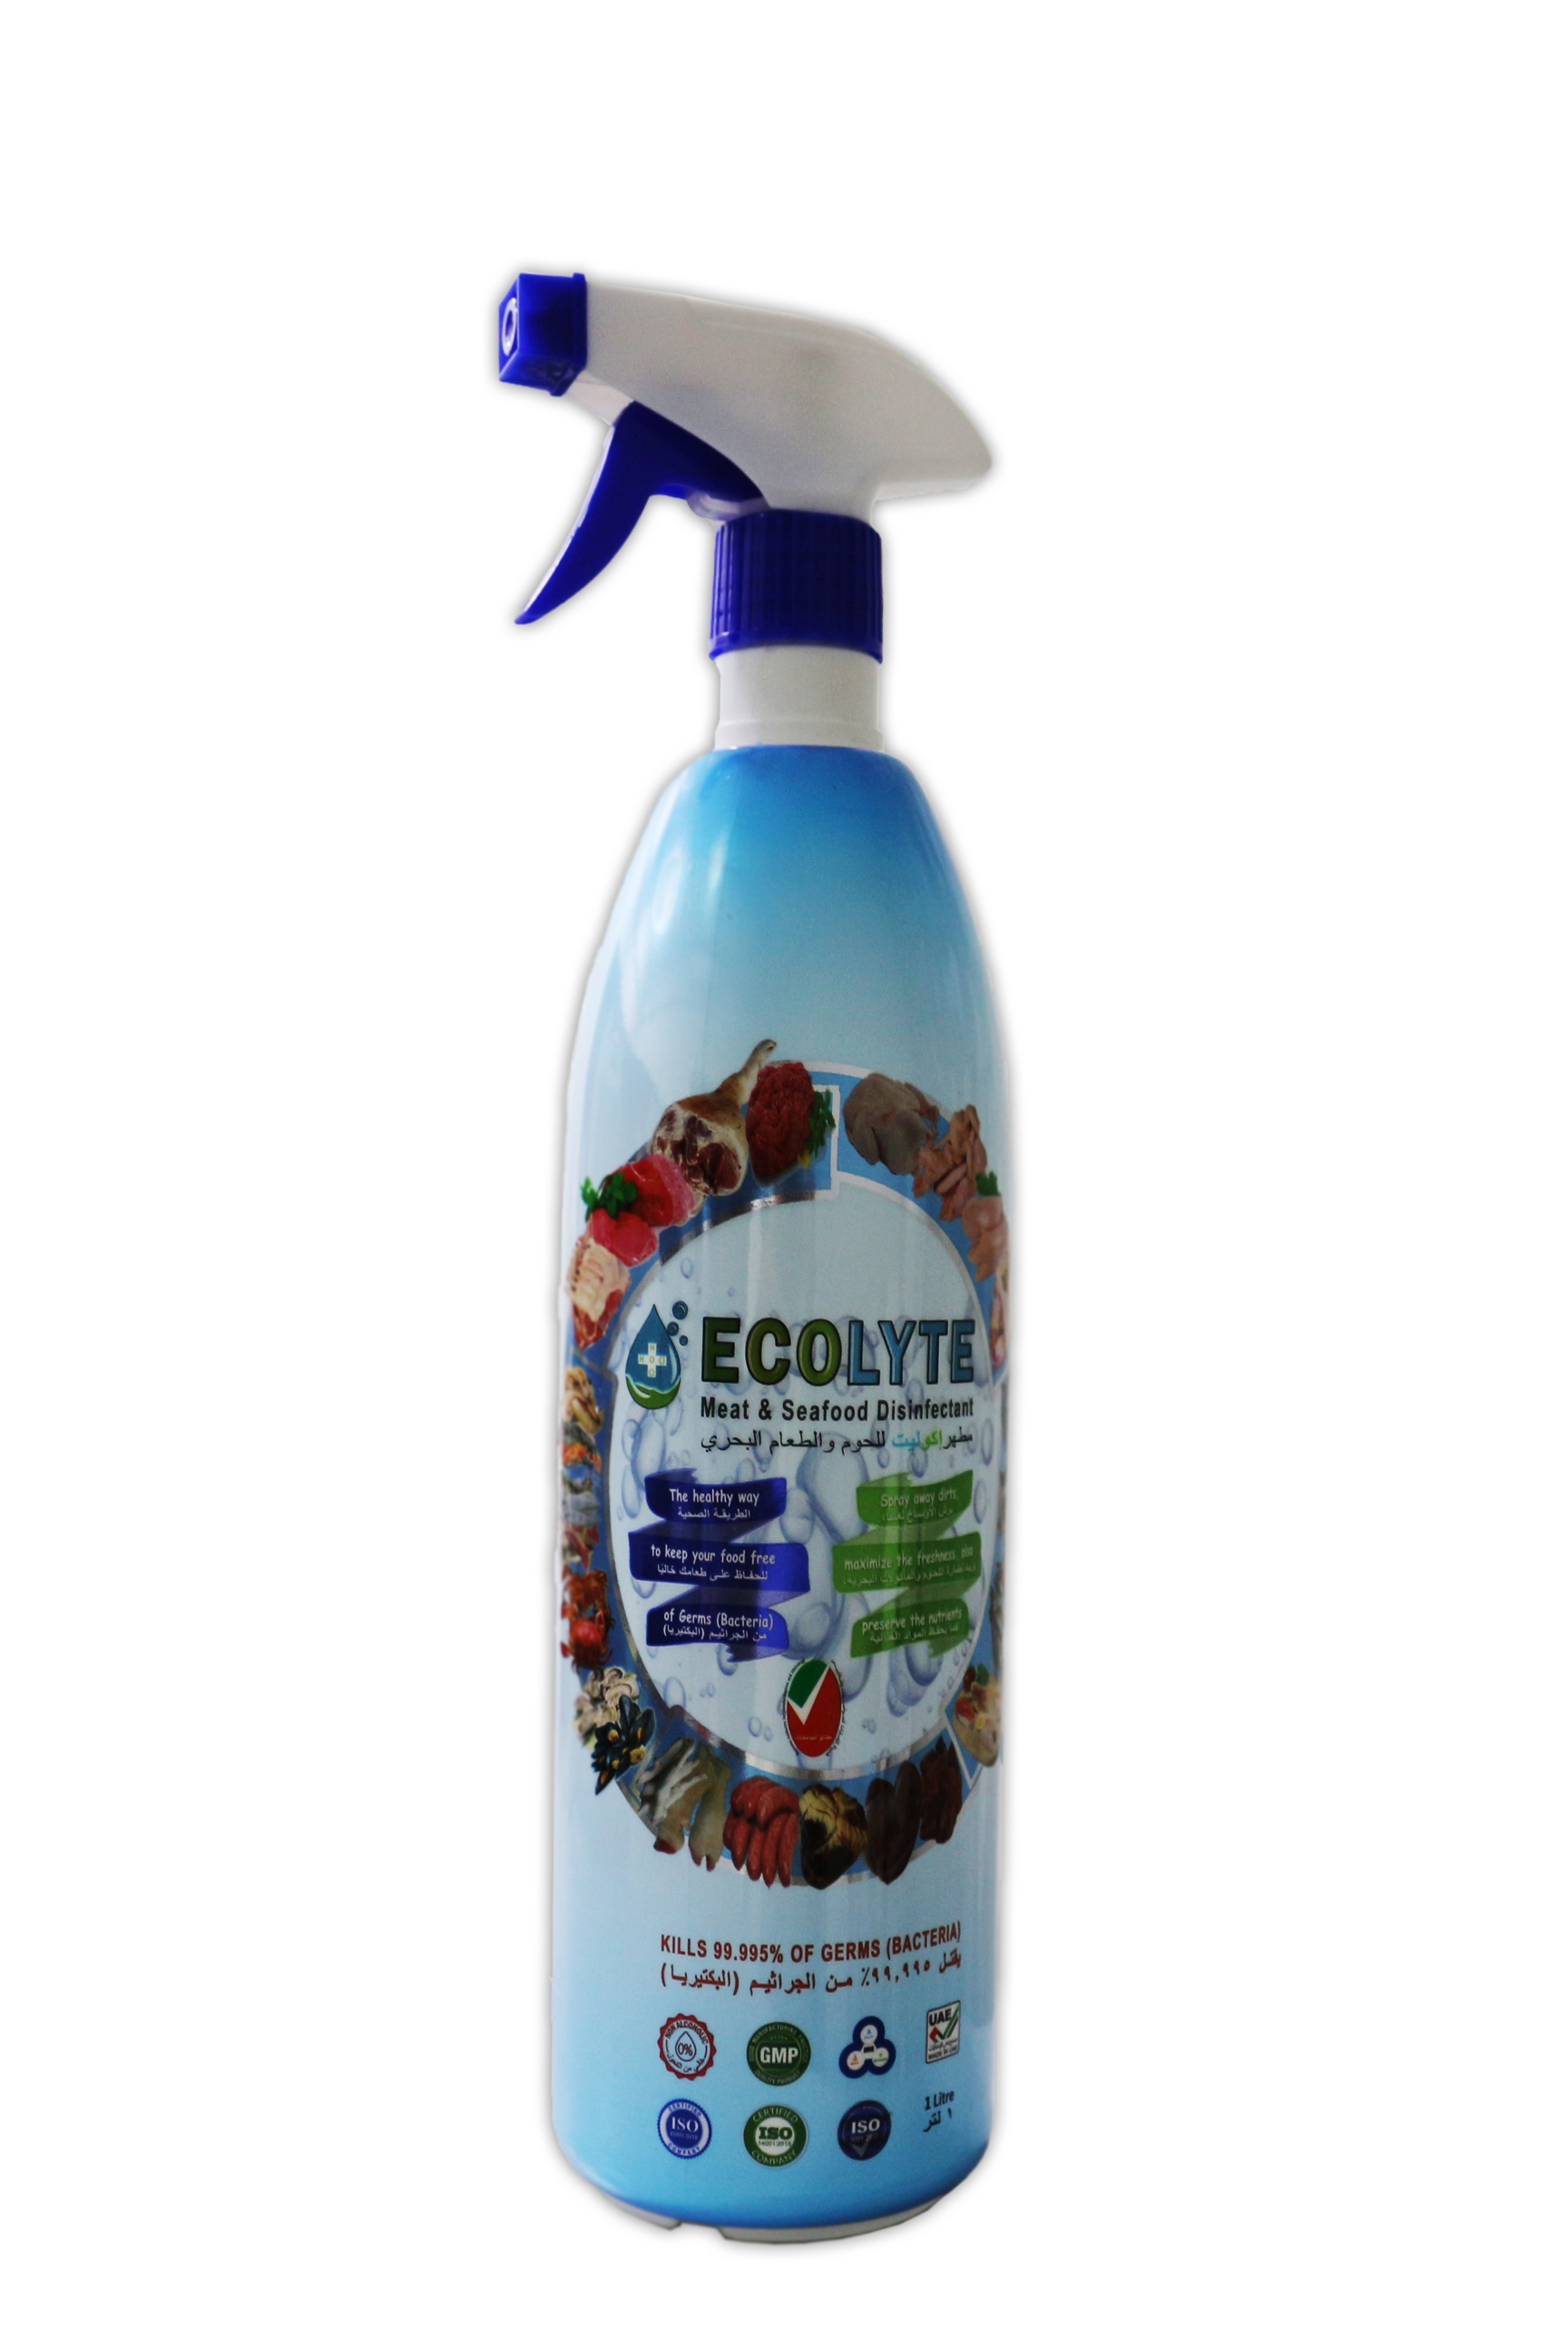 ECOLYTE MEAT AND SEAFOOD DISINFECTANT 1 LITRE